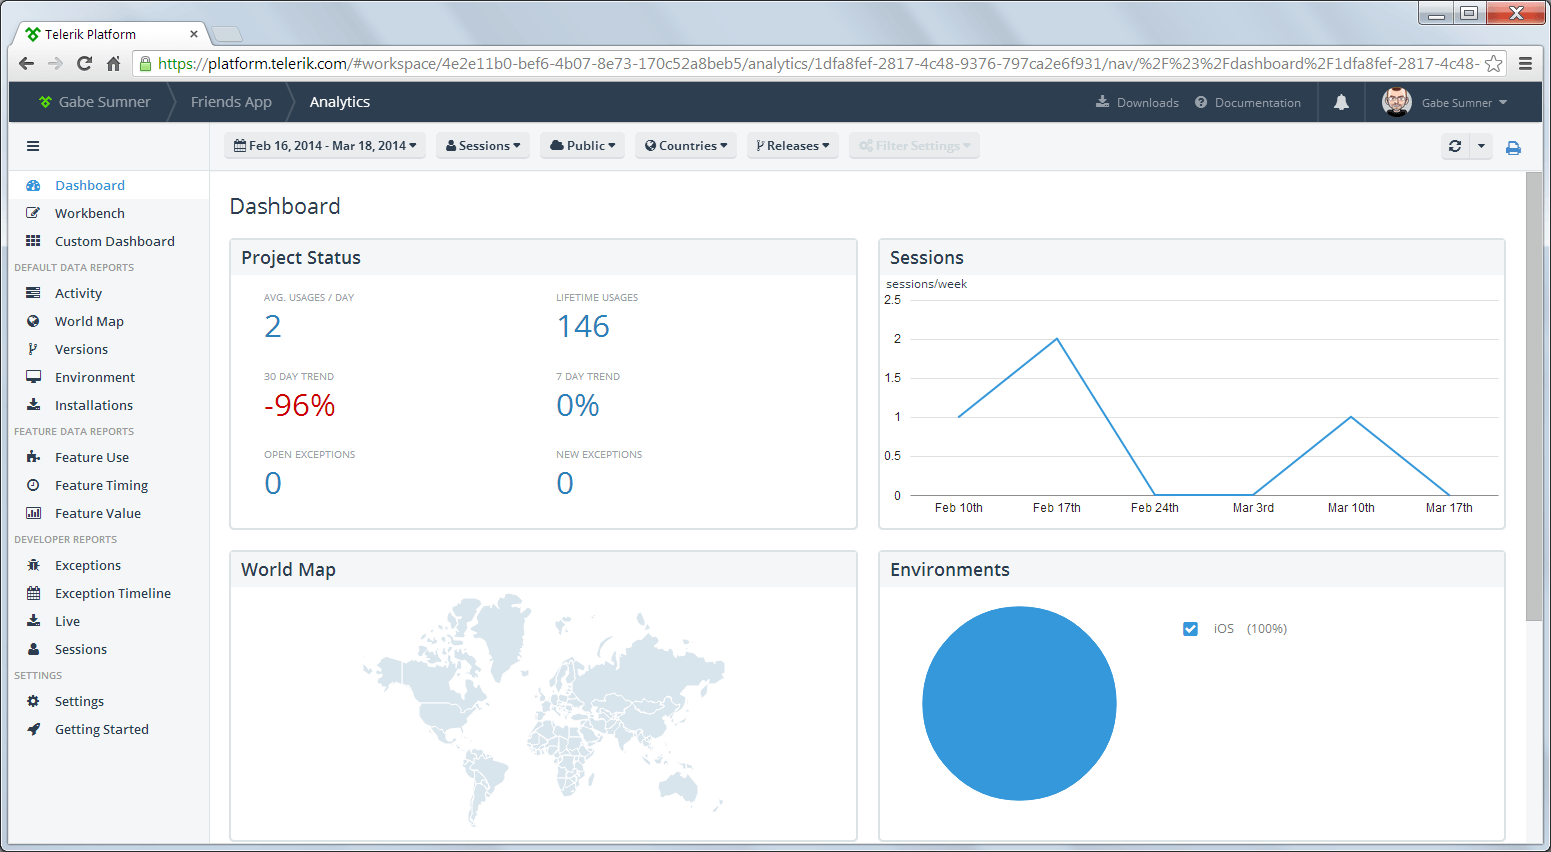 Telerik Analytics inside the Telerik Platform